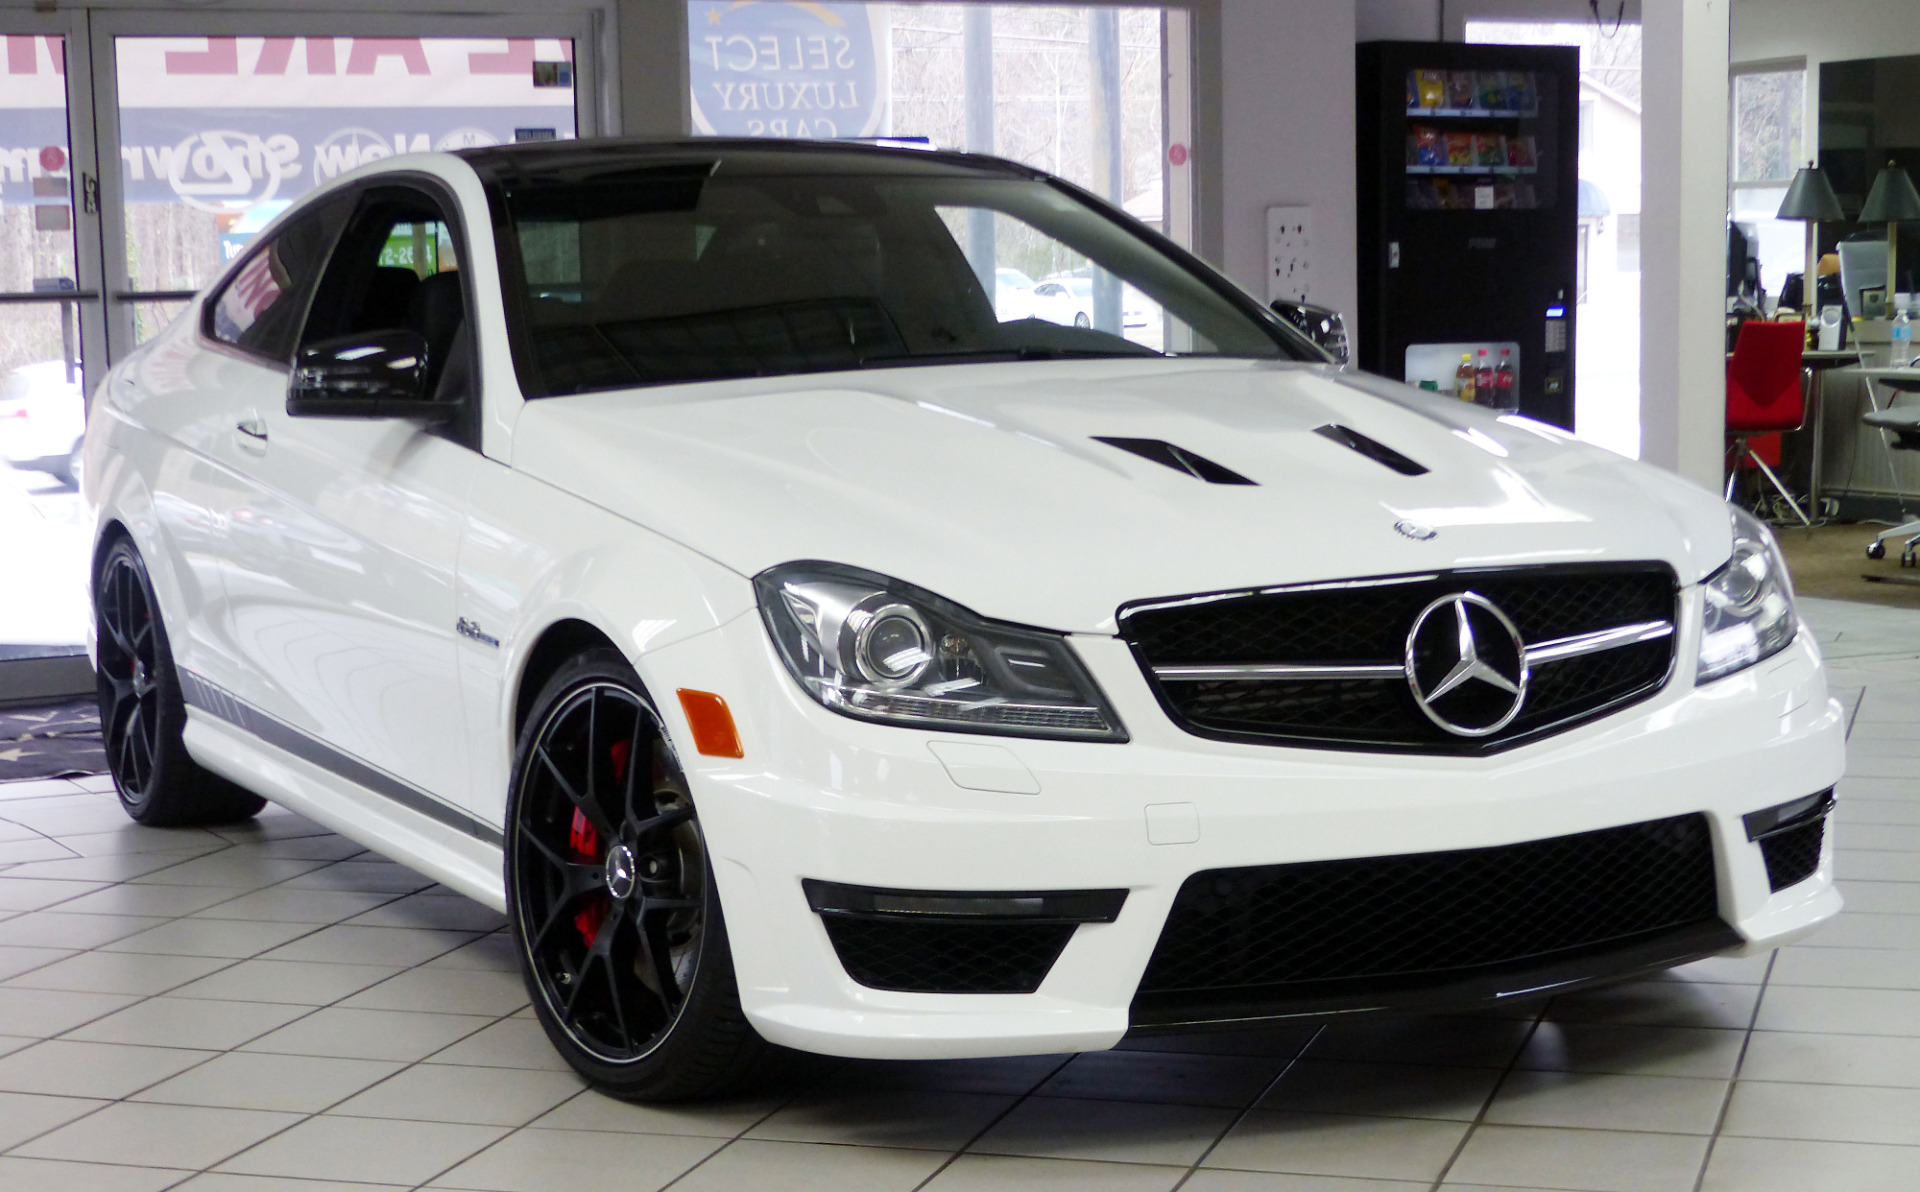 used 2014 mercedes benz c class c63 amg marietta ga. Black Bedroom Furniture Sets. Home Design Ideas